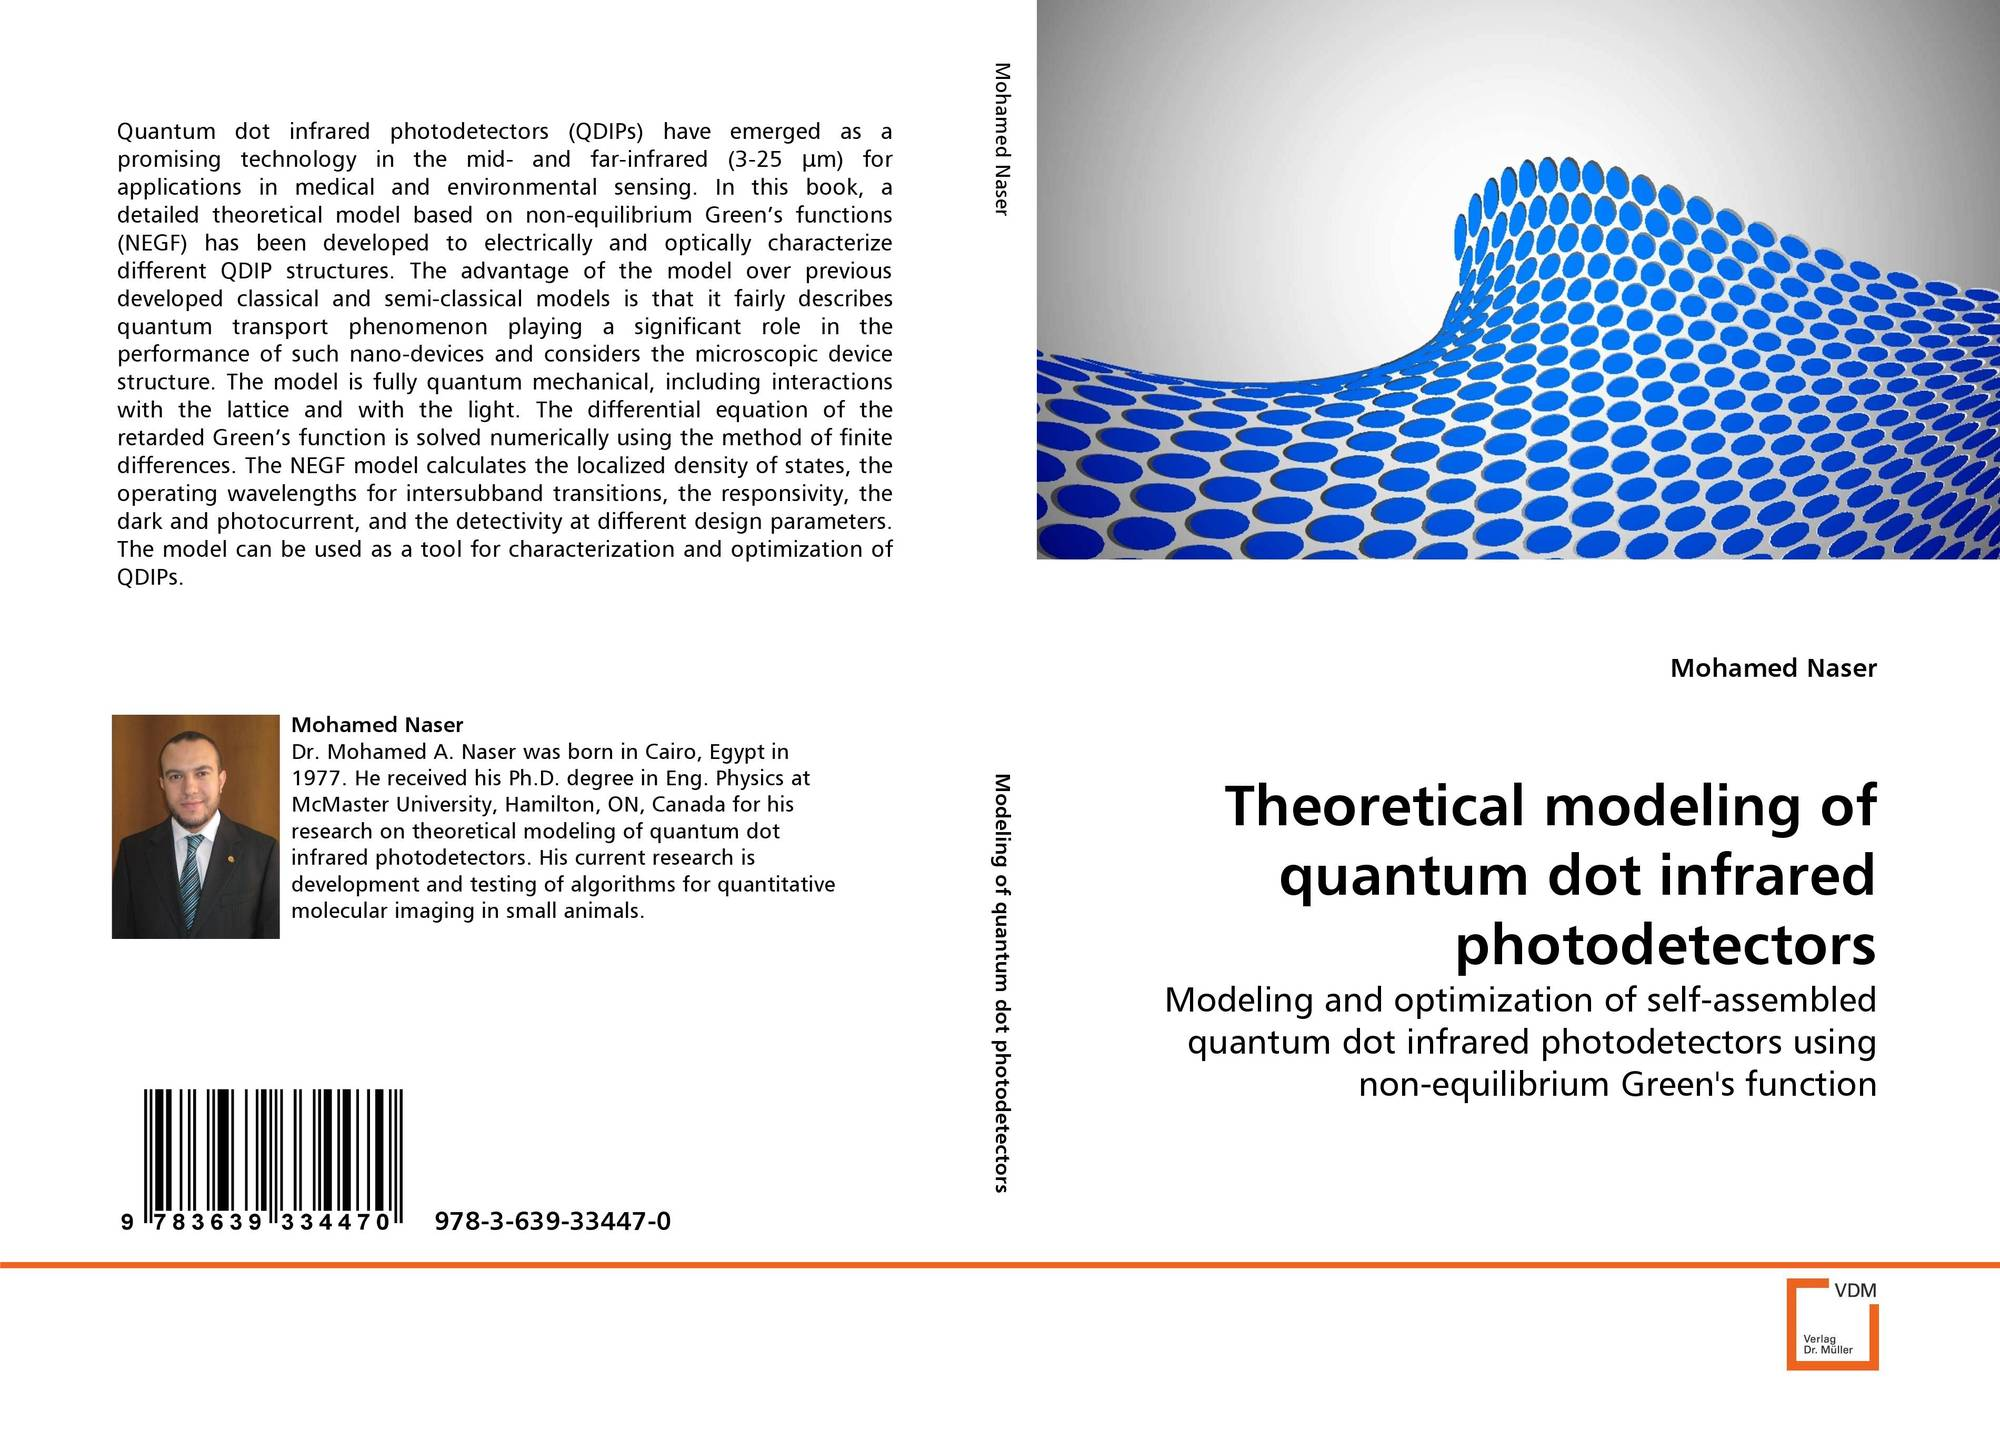 Theoretical modeling of quantum dot infrared photodetectors